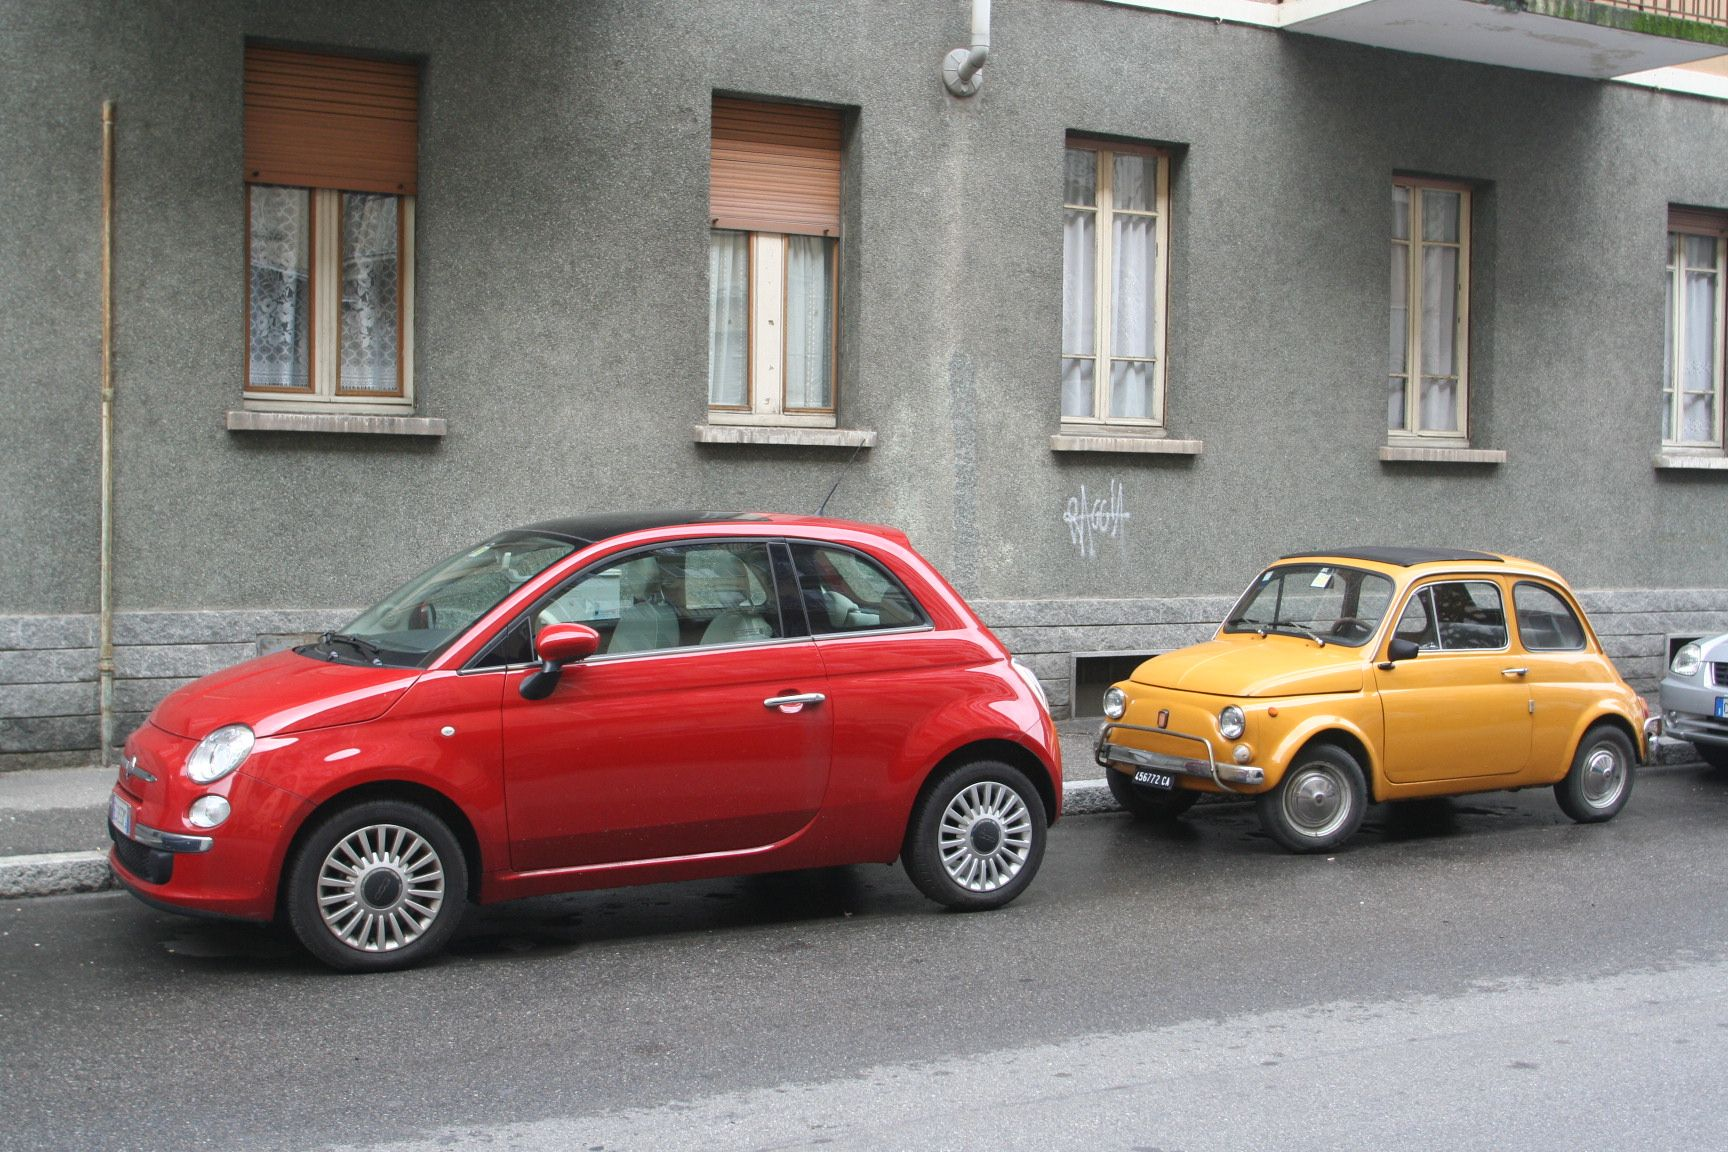 Fiat 500 New And Old Model Now I Want An Old One Too With